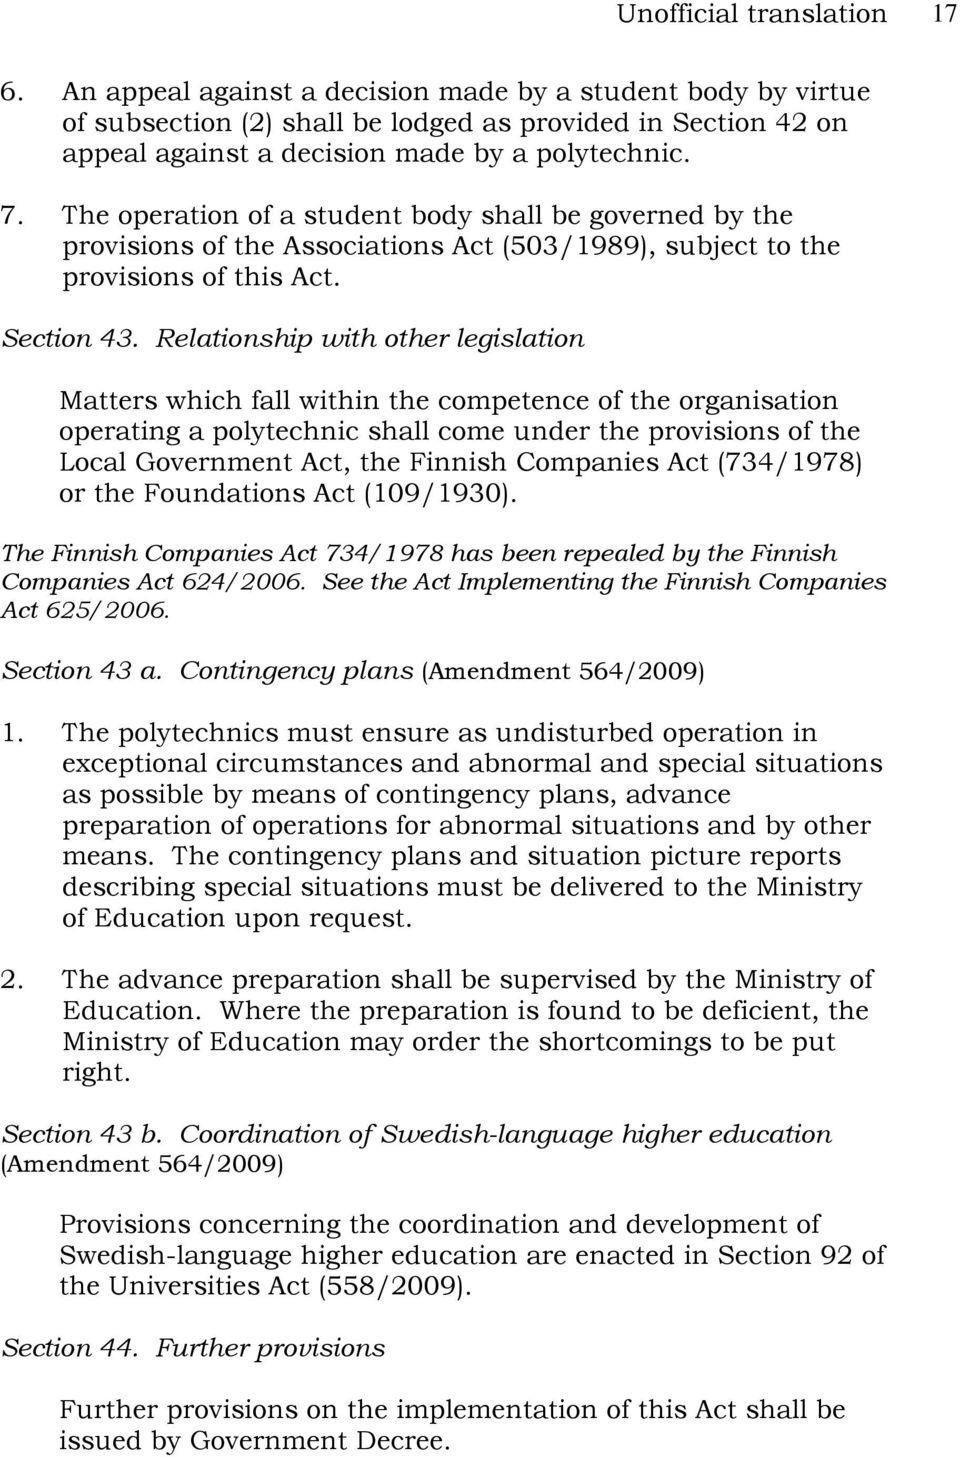 The operation of a student body shall be governed by the provisions of the Associations Act (503/1989), subject to the provisions of this Act. Section 43.